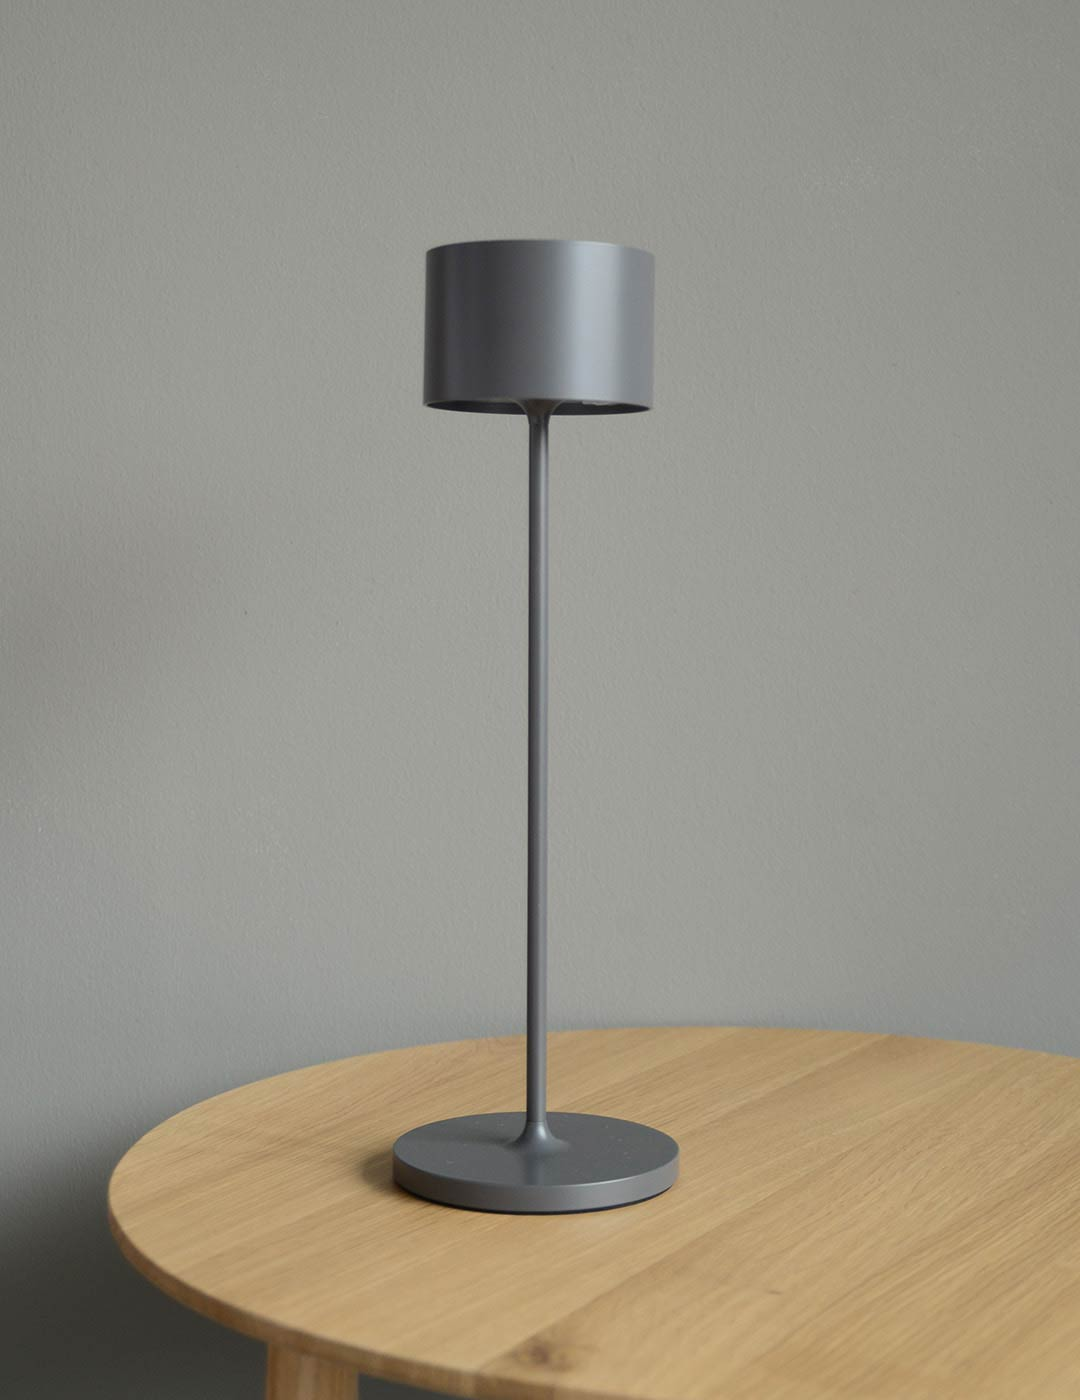 grey portable wireless table lamp for indoor and outdoor use